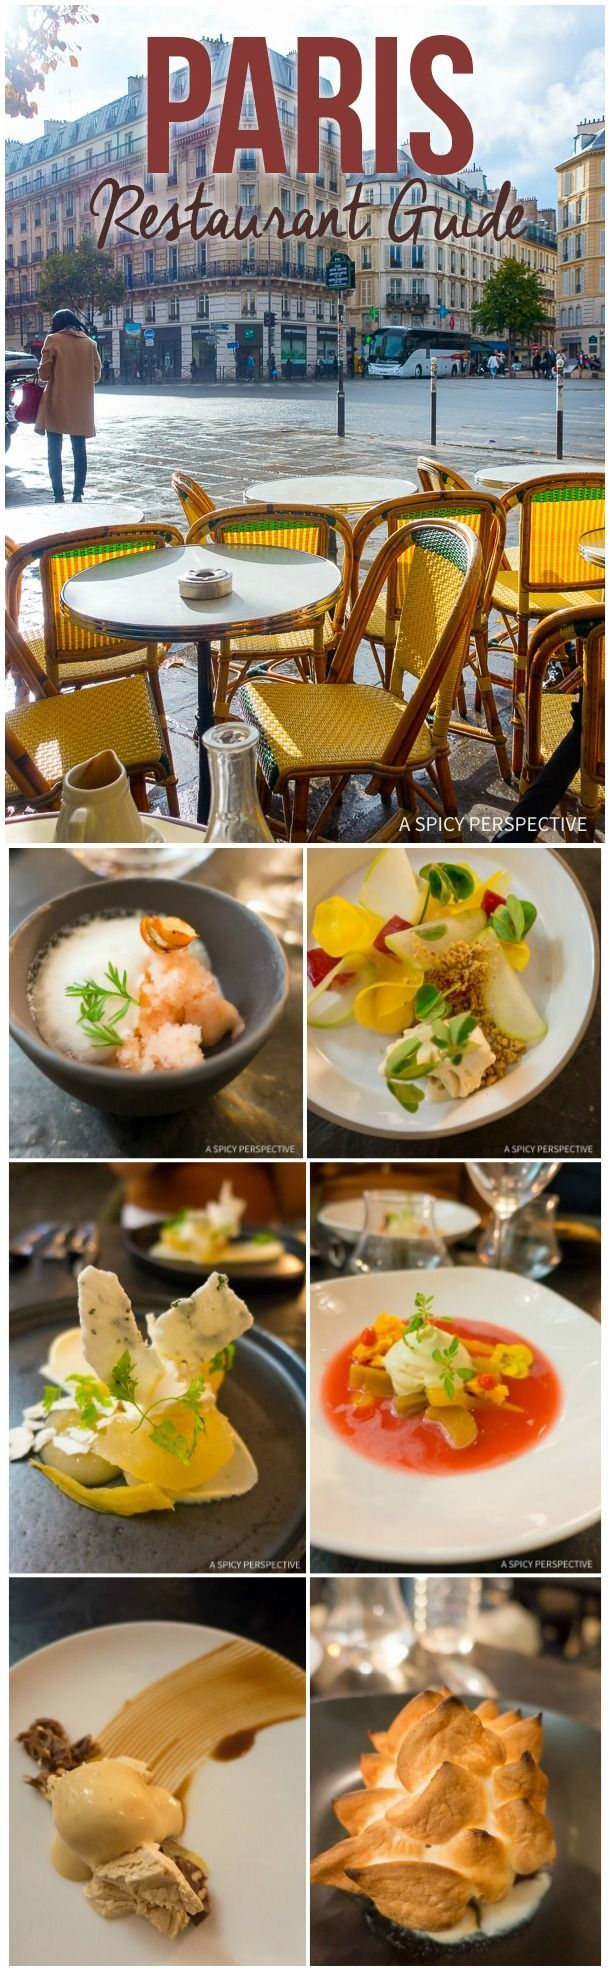 restaurants in paris paris restaurants restaurant guide and